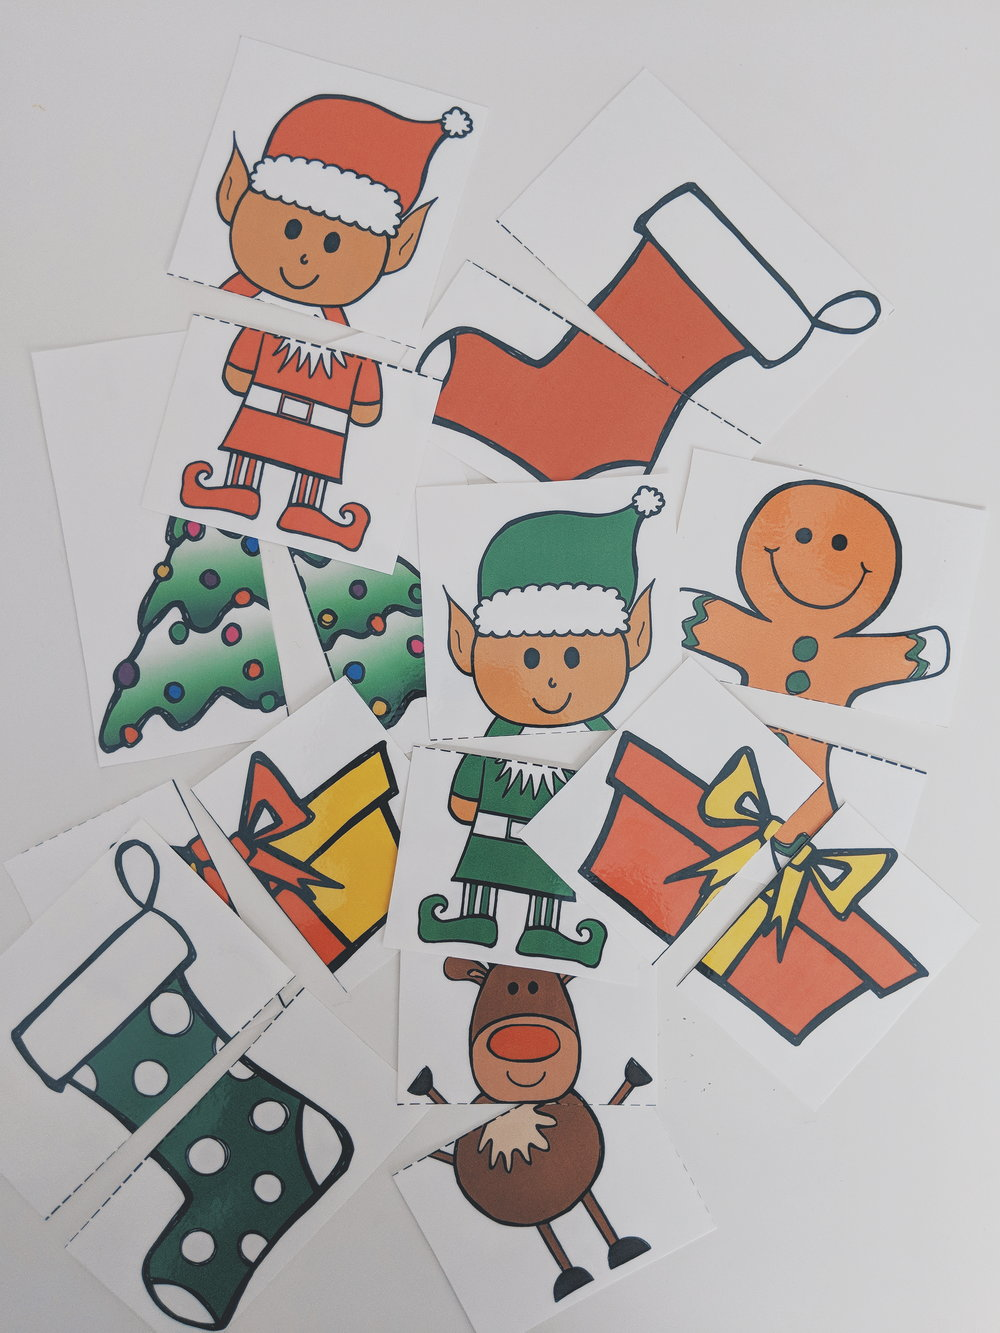 2 Piece Christmas Puzzles Free Printable www.momentswithmiss.com 3.jpg